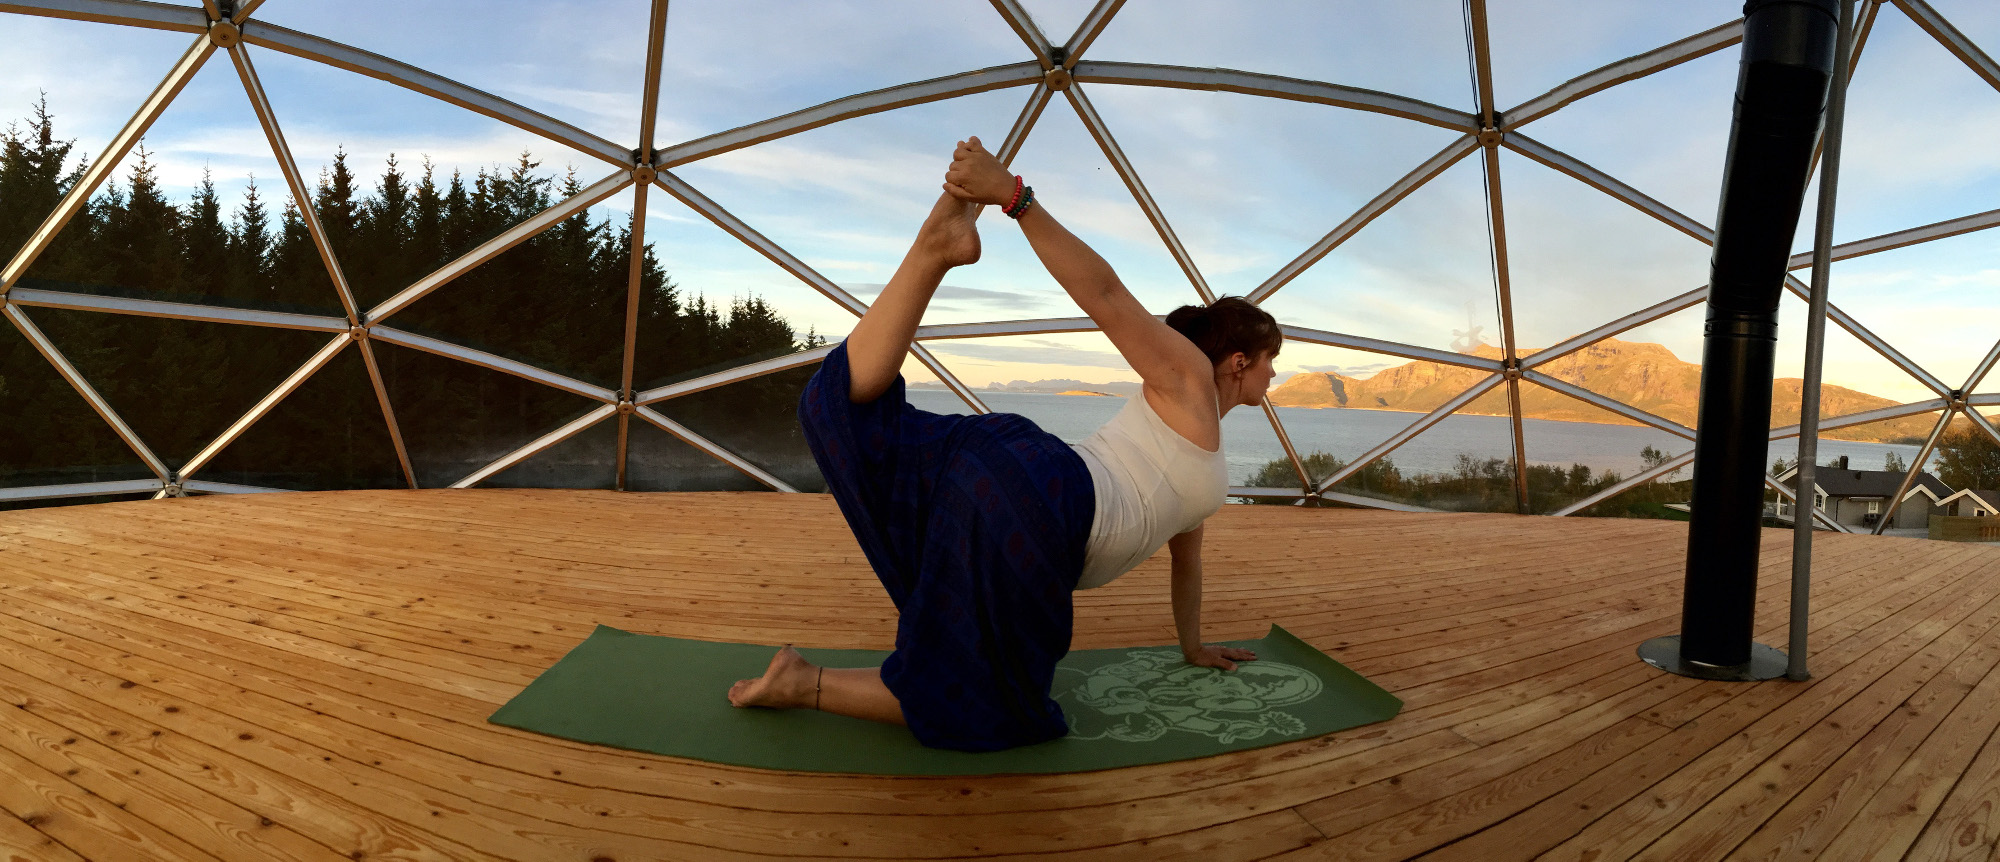 Practising yoga against a stunning backdrop